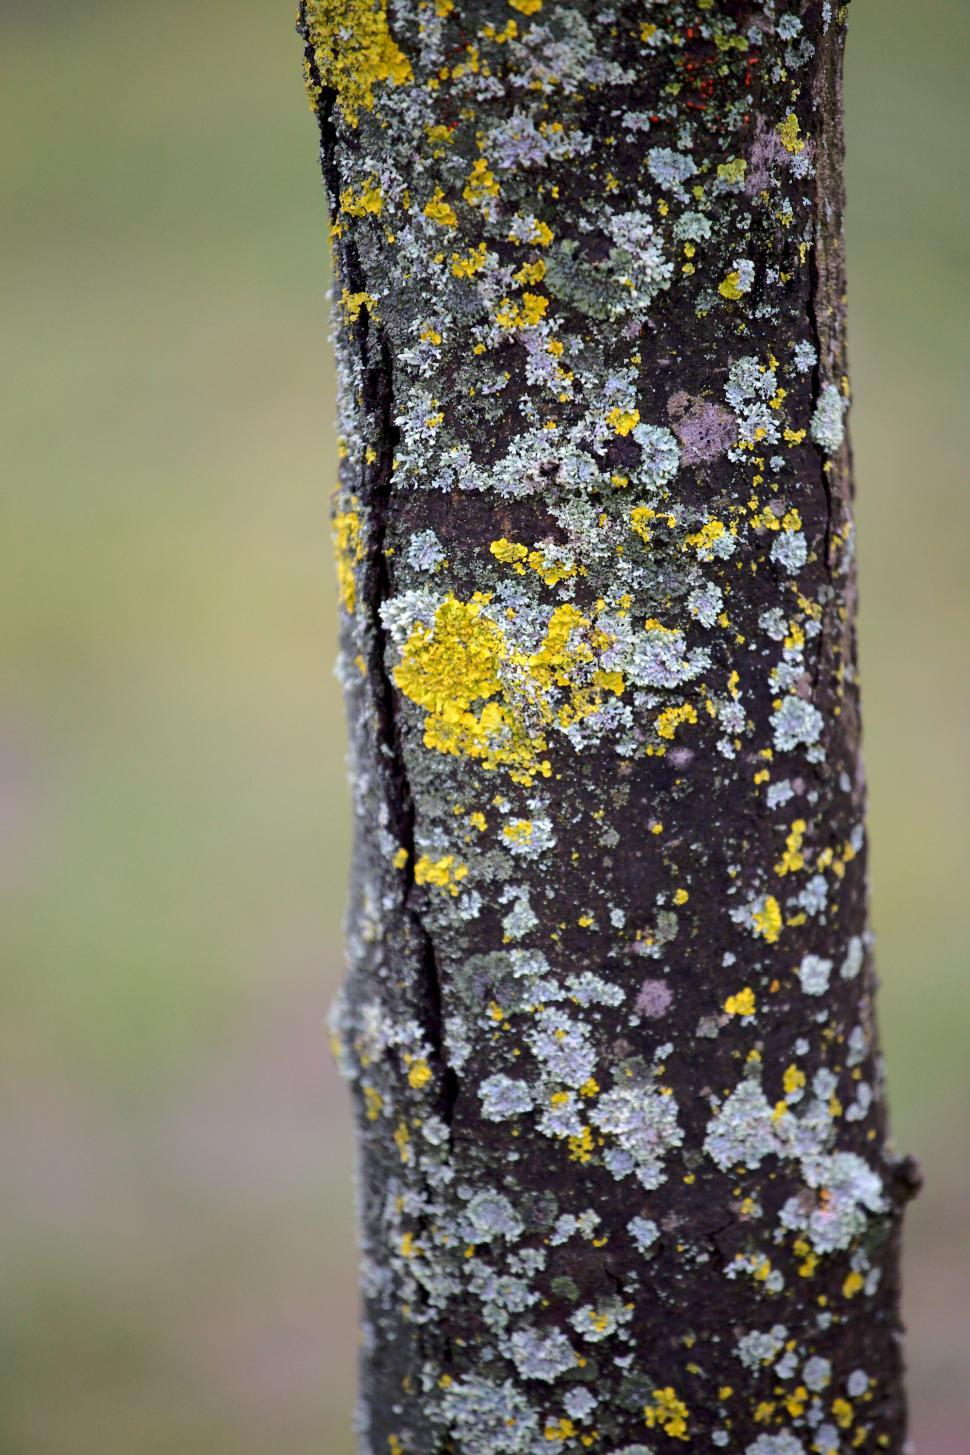 Download Free Stock HD Photo of Tree detail  Online